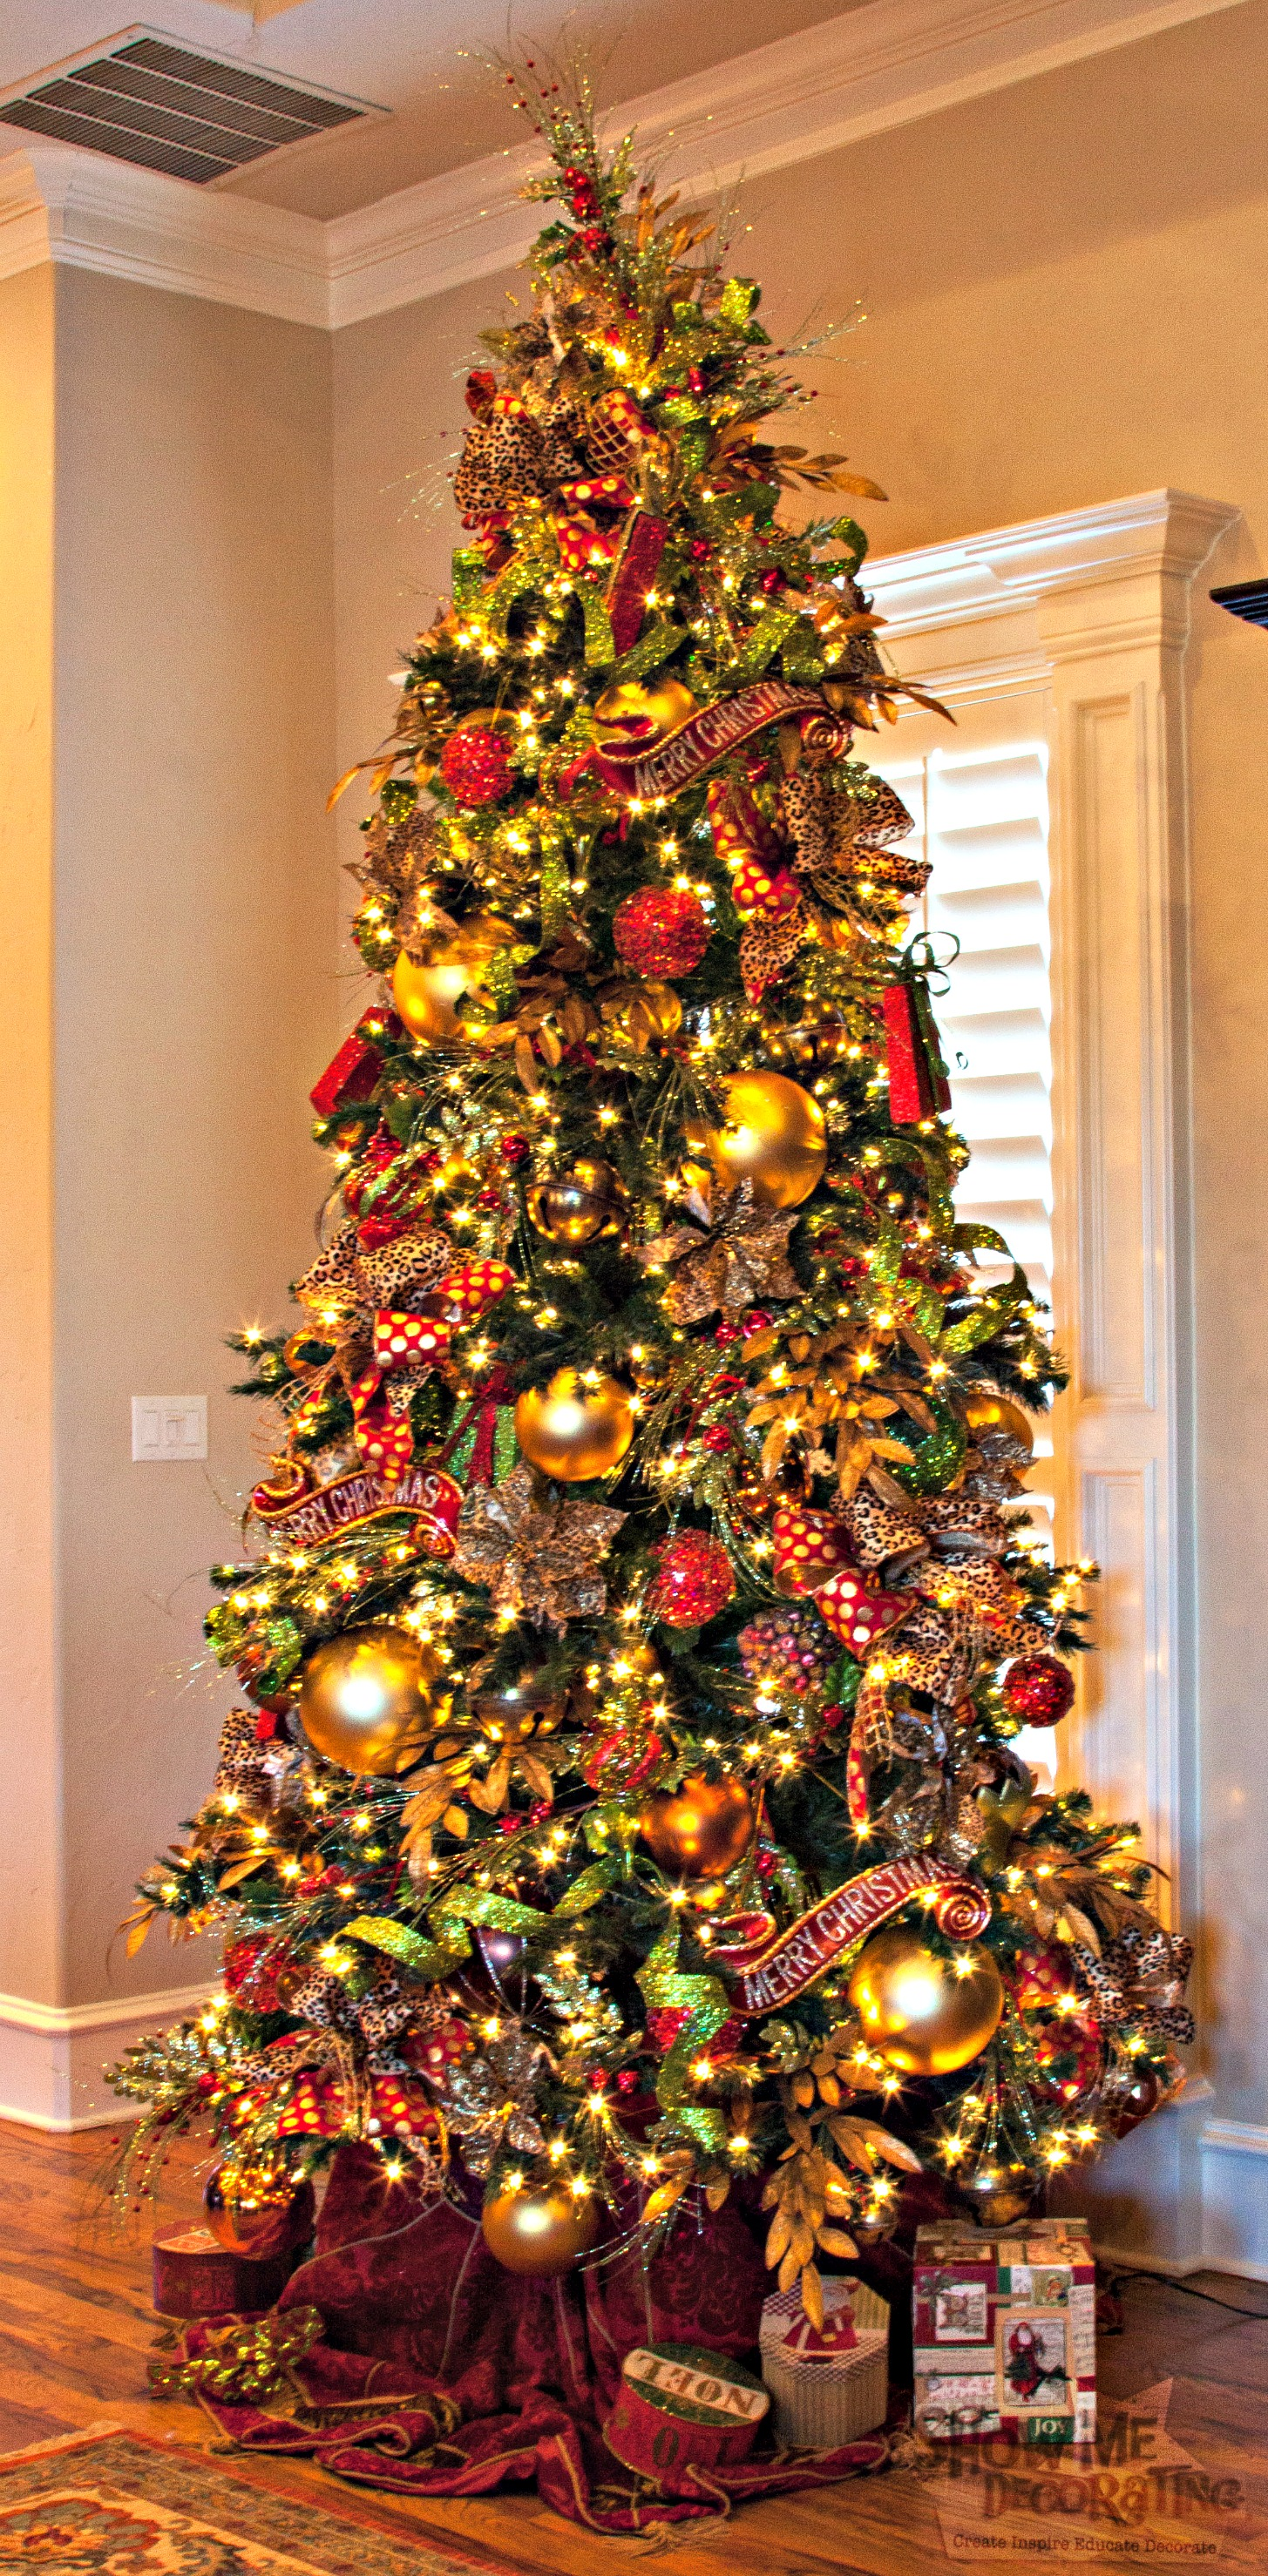 Christmas tree theme show me decorating for Decoration xmas tree